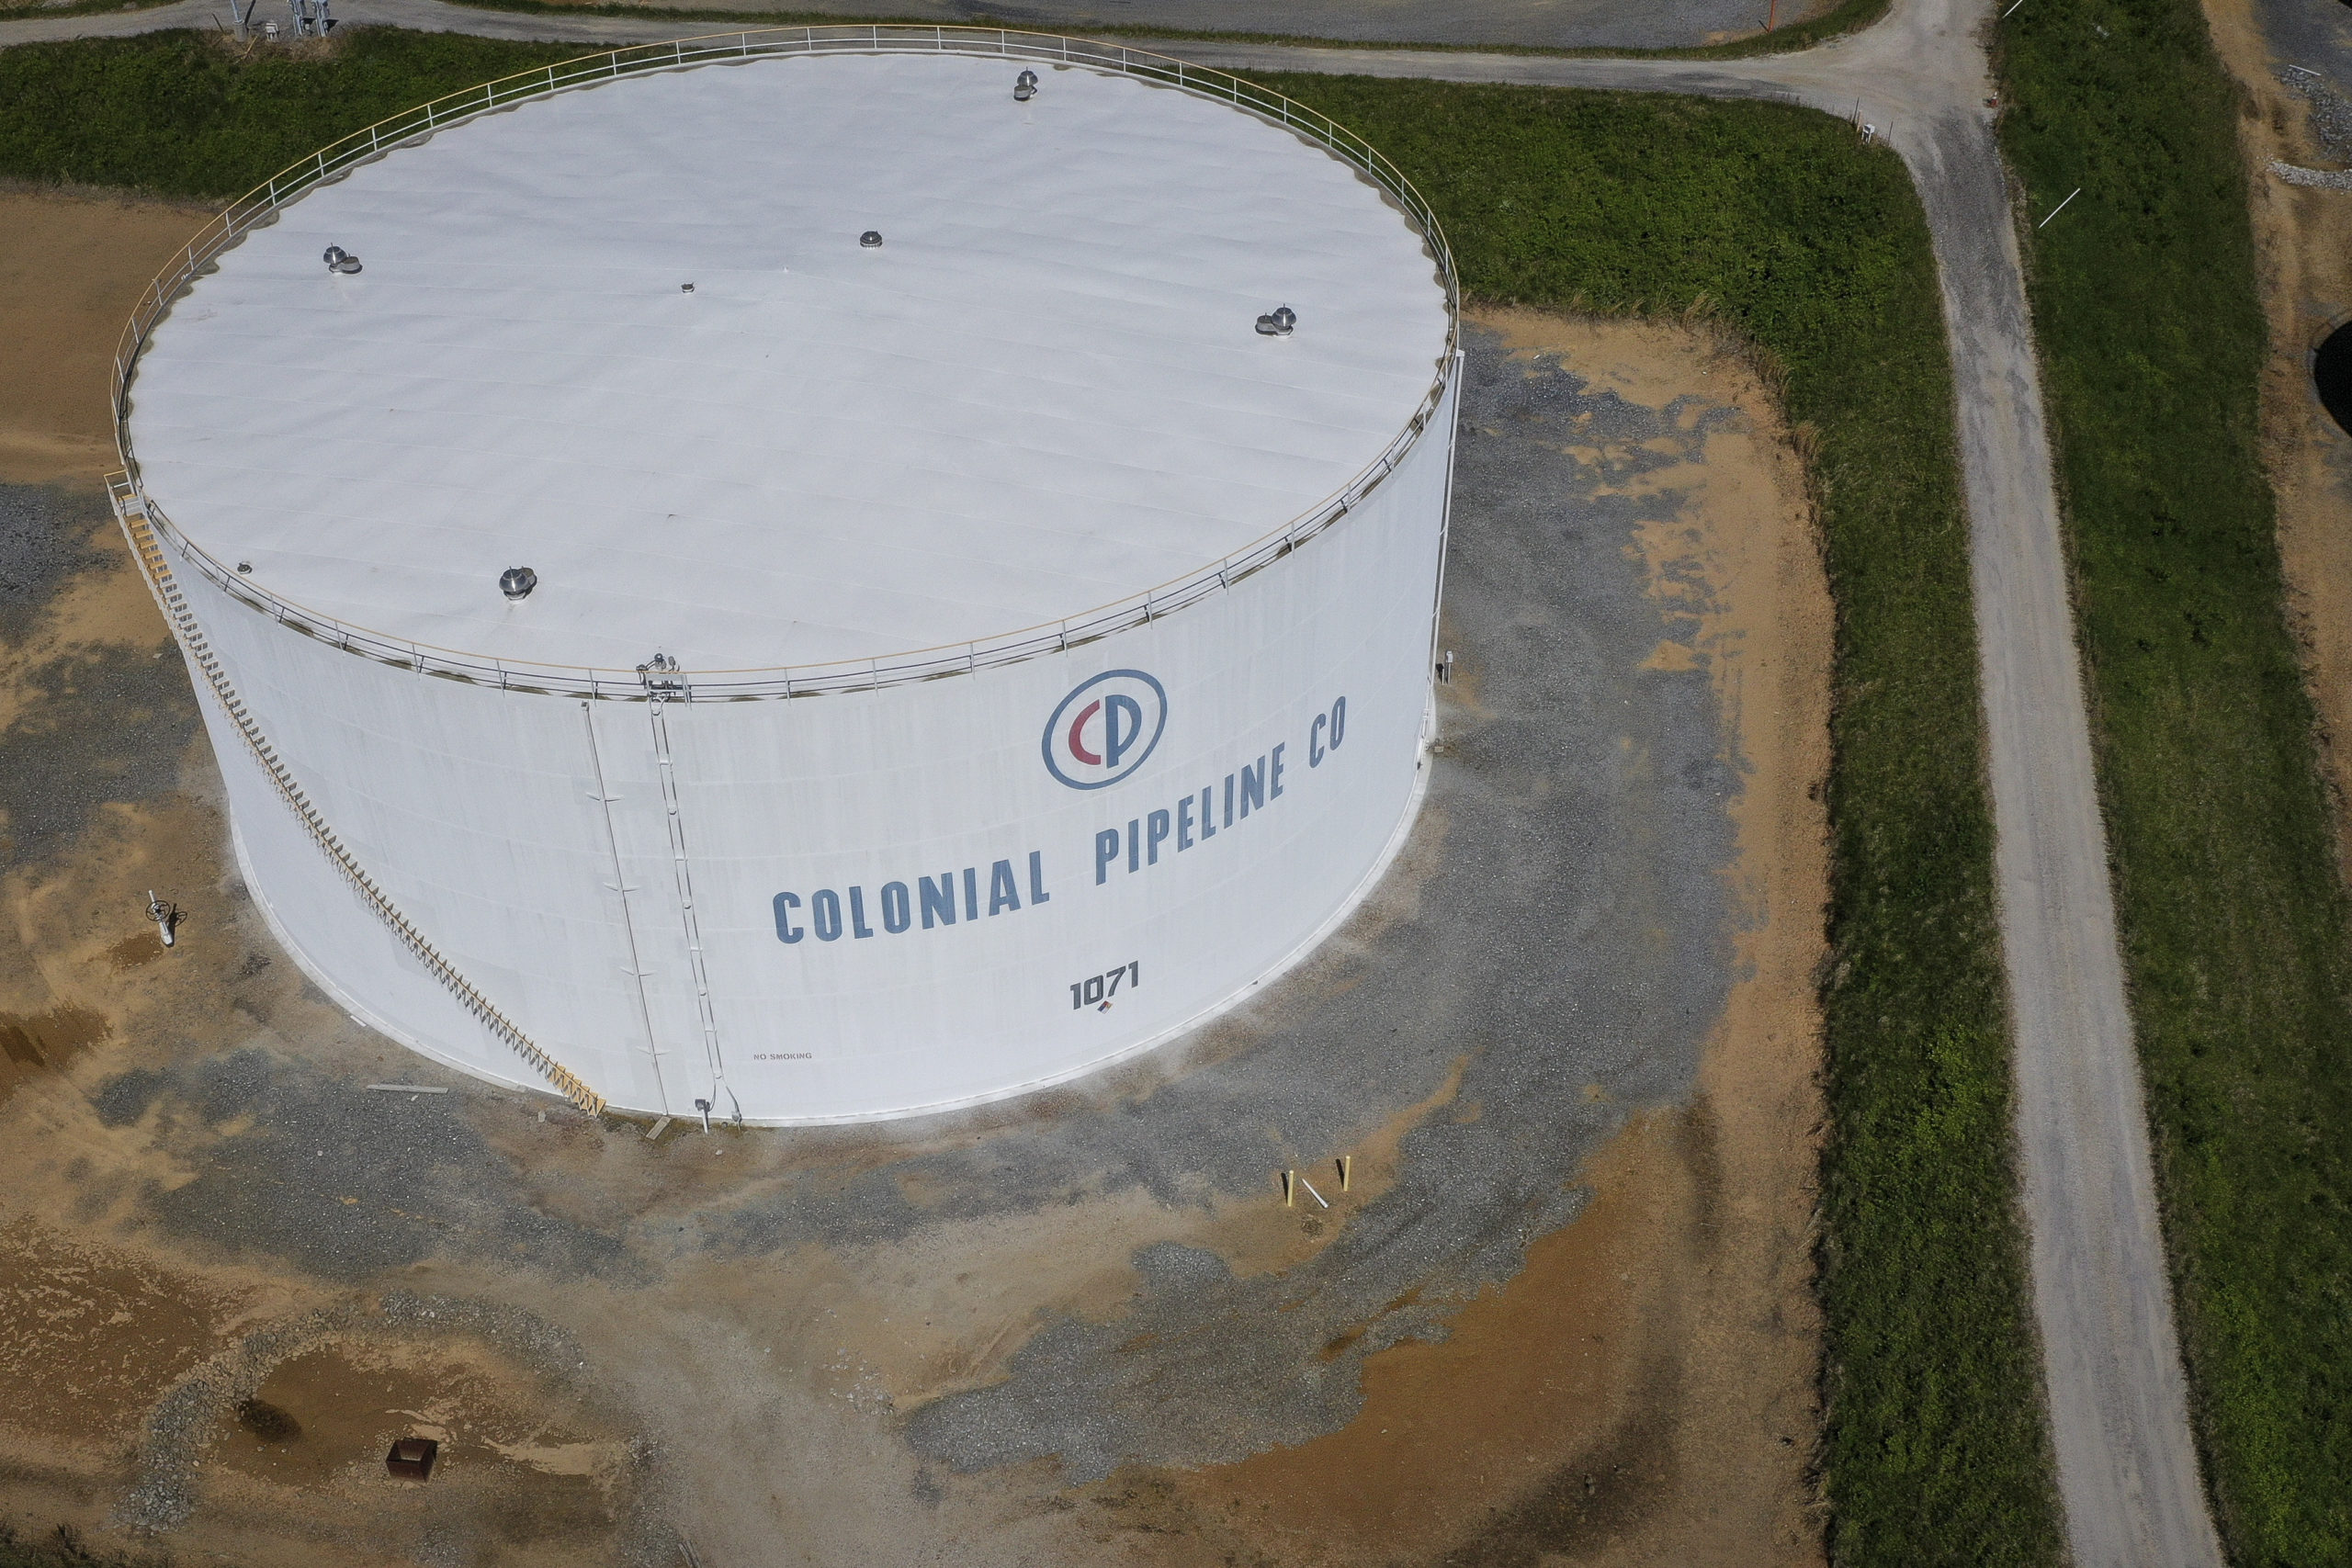 WOODBINE, MD - MAY 13: In an aerial view, fuel holding tanks are seen at Colonial Pipeline's Dorsey Junction Station on May 13, 2021 in Woodbine, Maryland. The Colonial Pipeline has returned to operations following a cyberattack that disrupted gas supply for the eastern U.S. for days. (Photo by Drew Angerer/Getty Images)